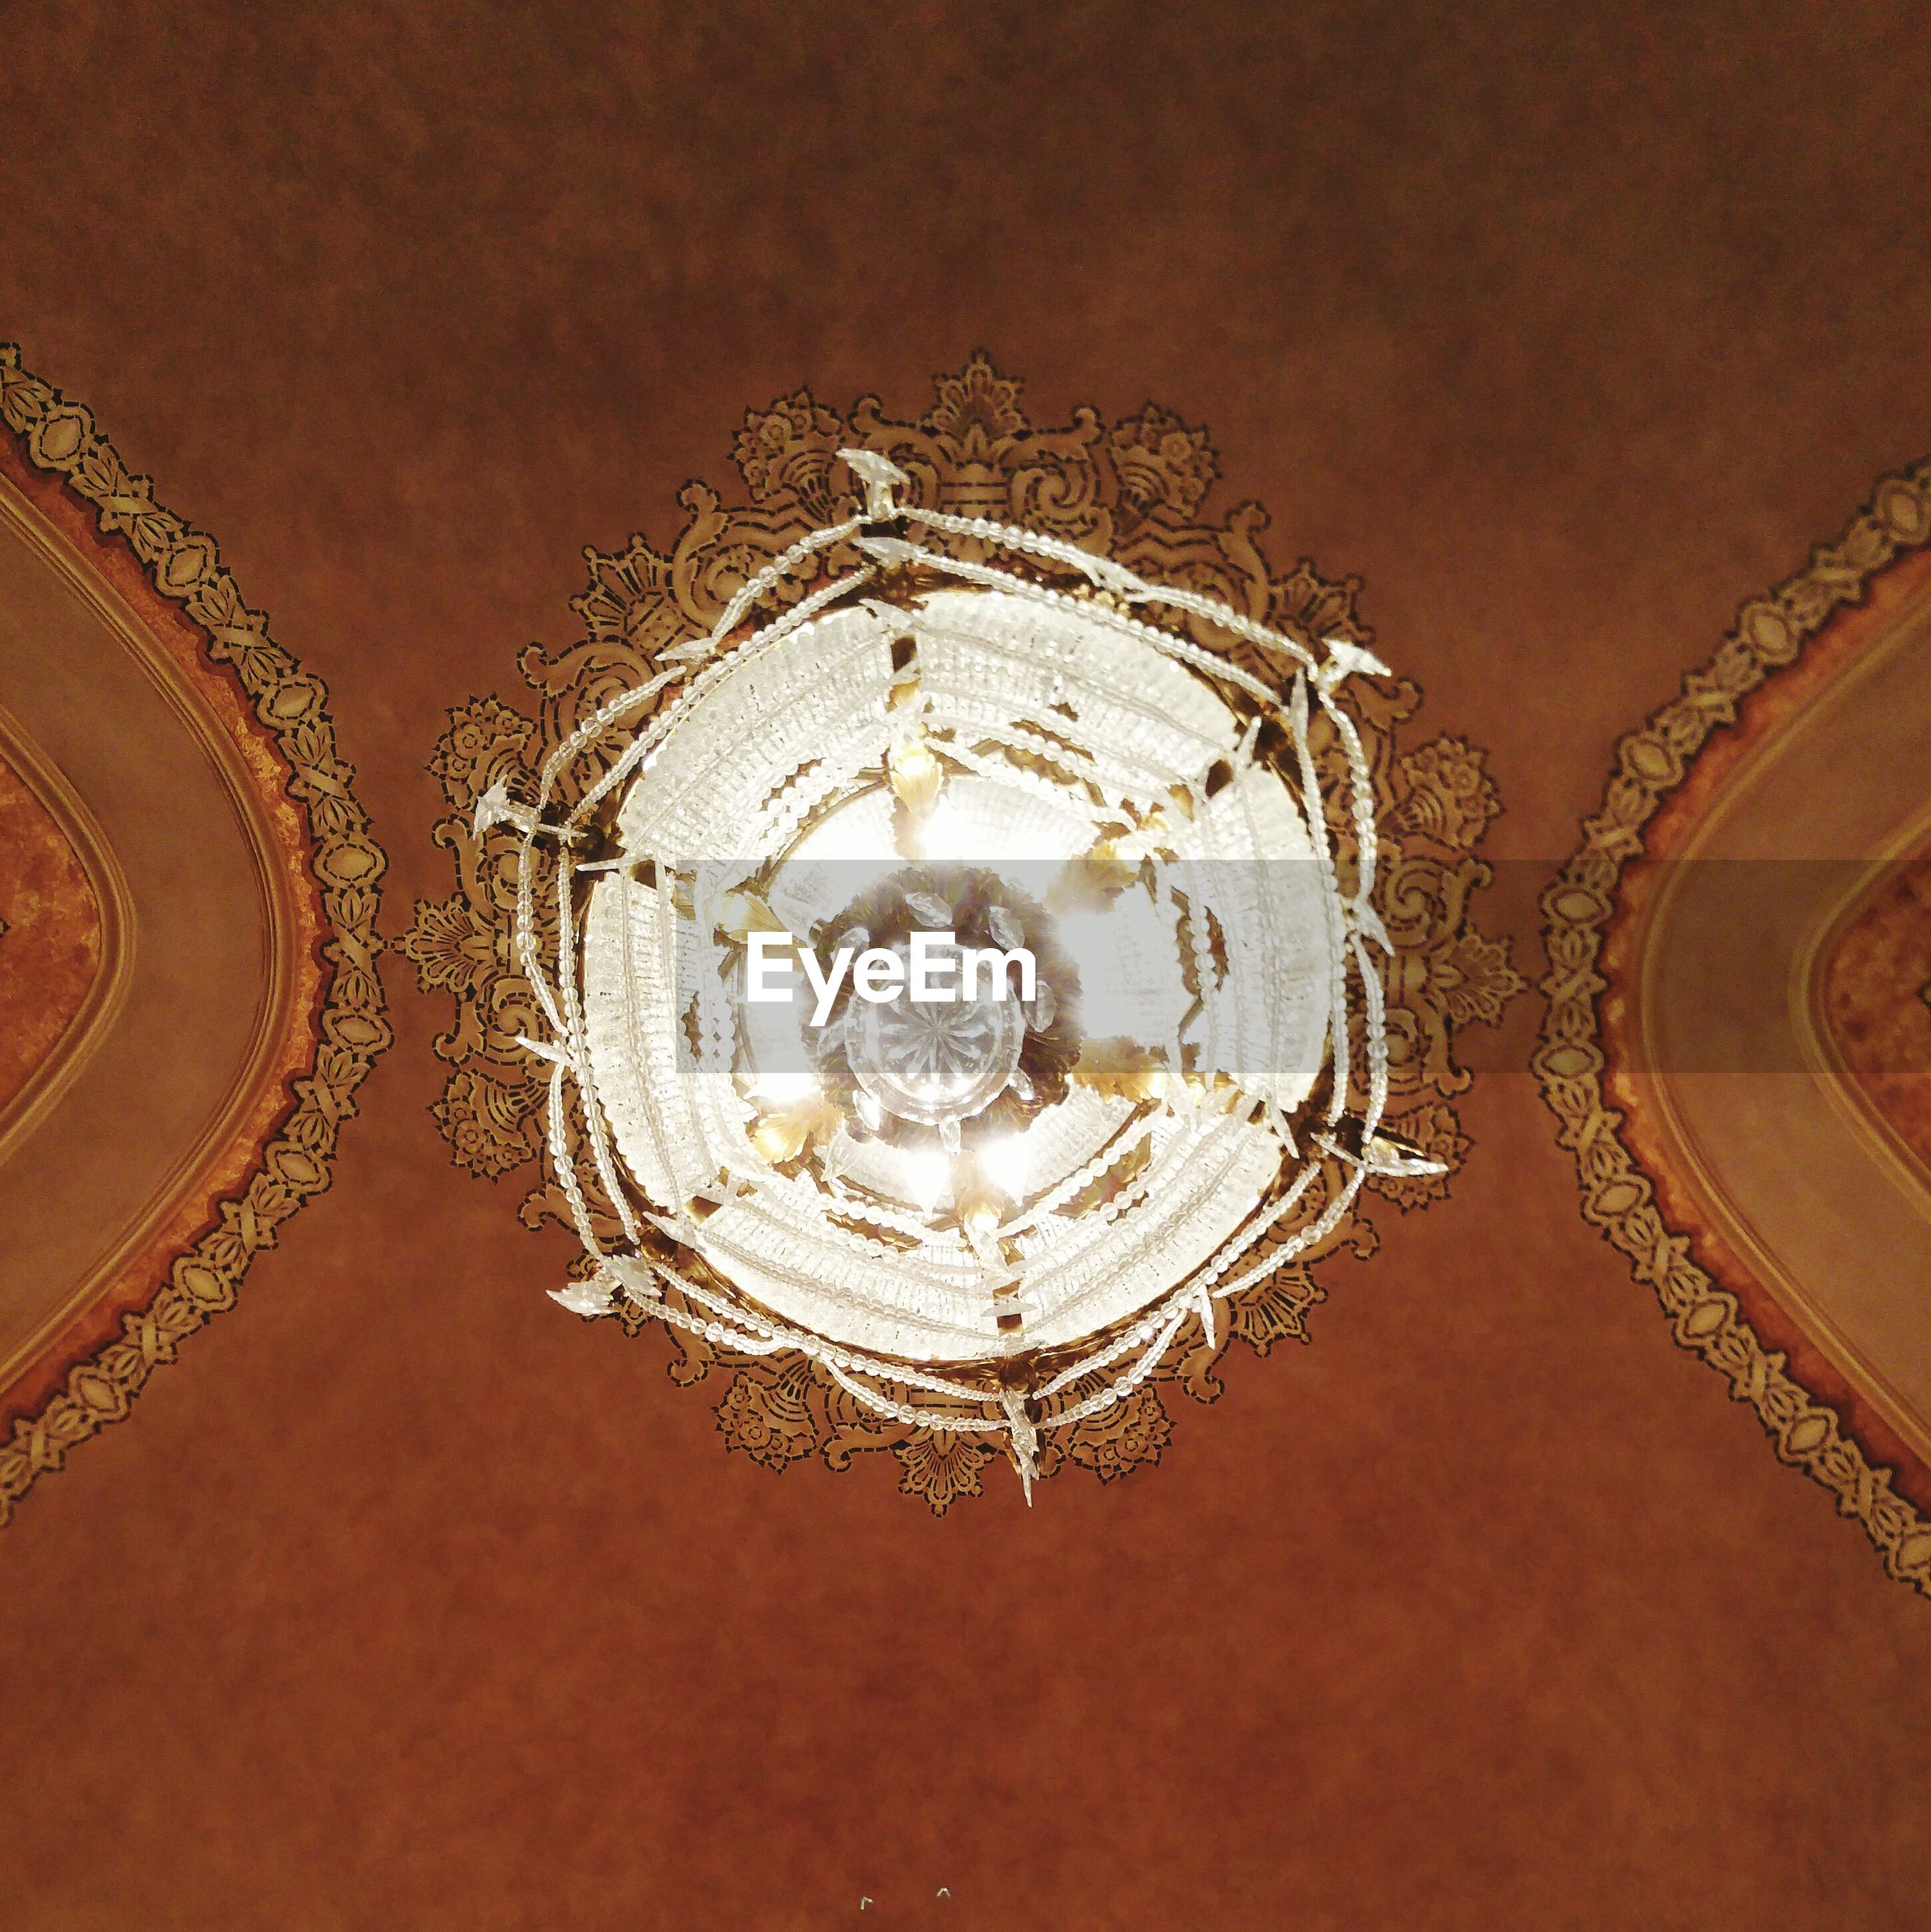 LOW ANGLE VIEW OF ORNATE CHANDELIER